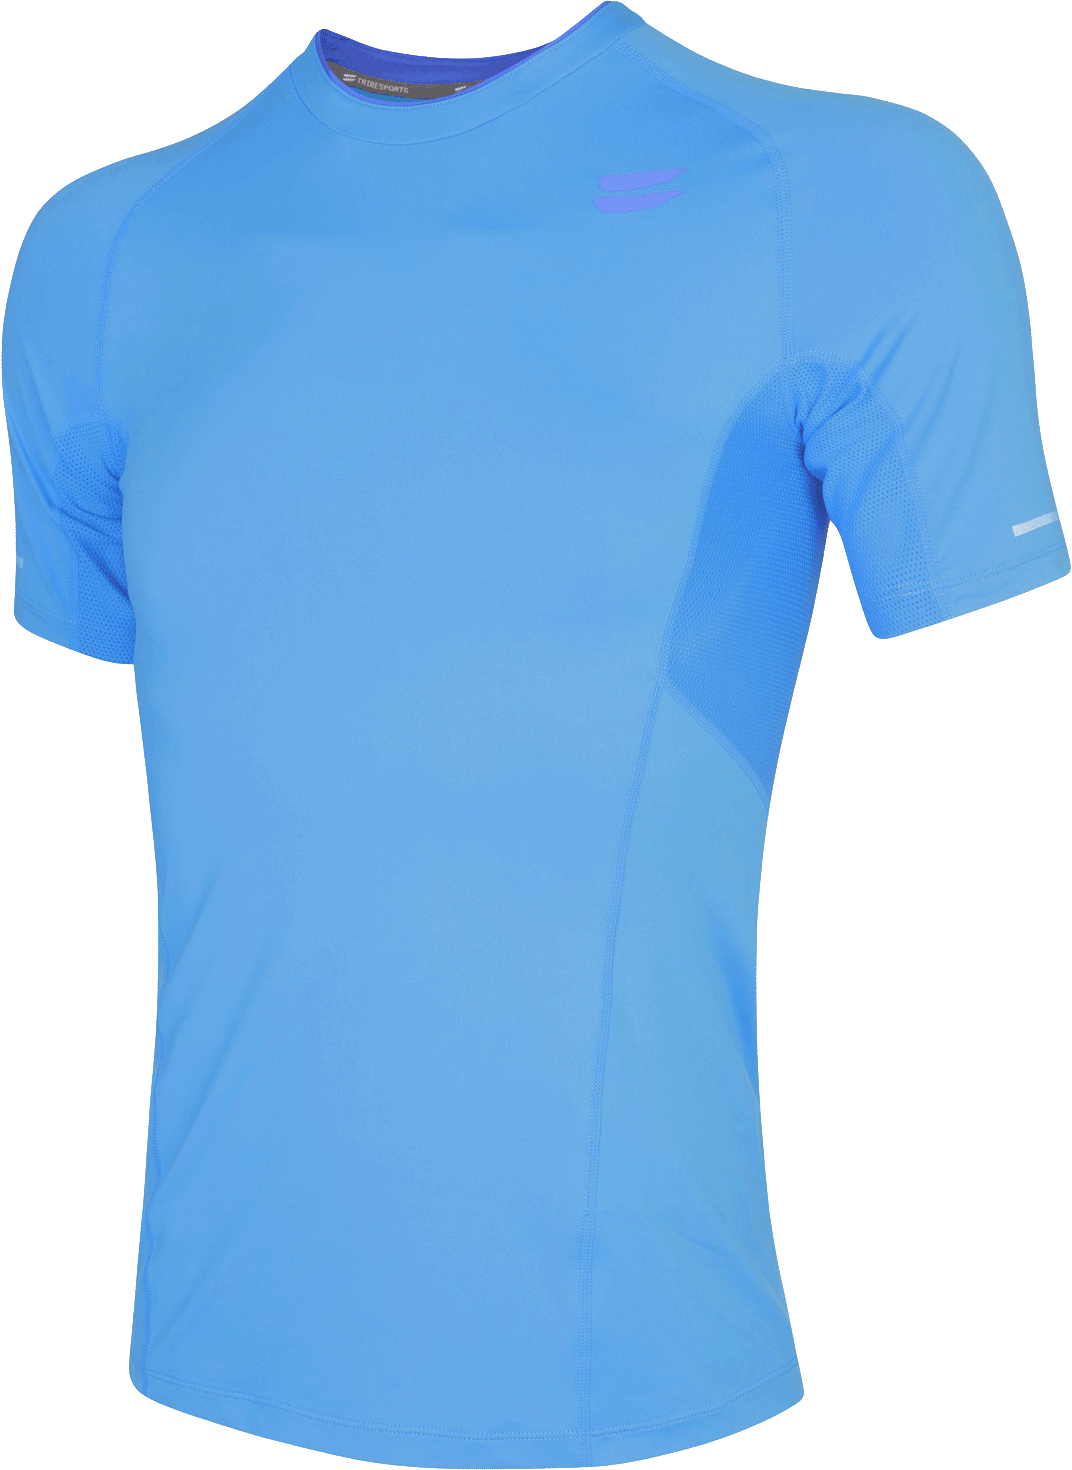 Men's Short Sleeved Tops